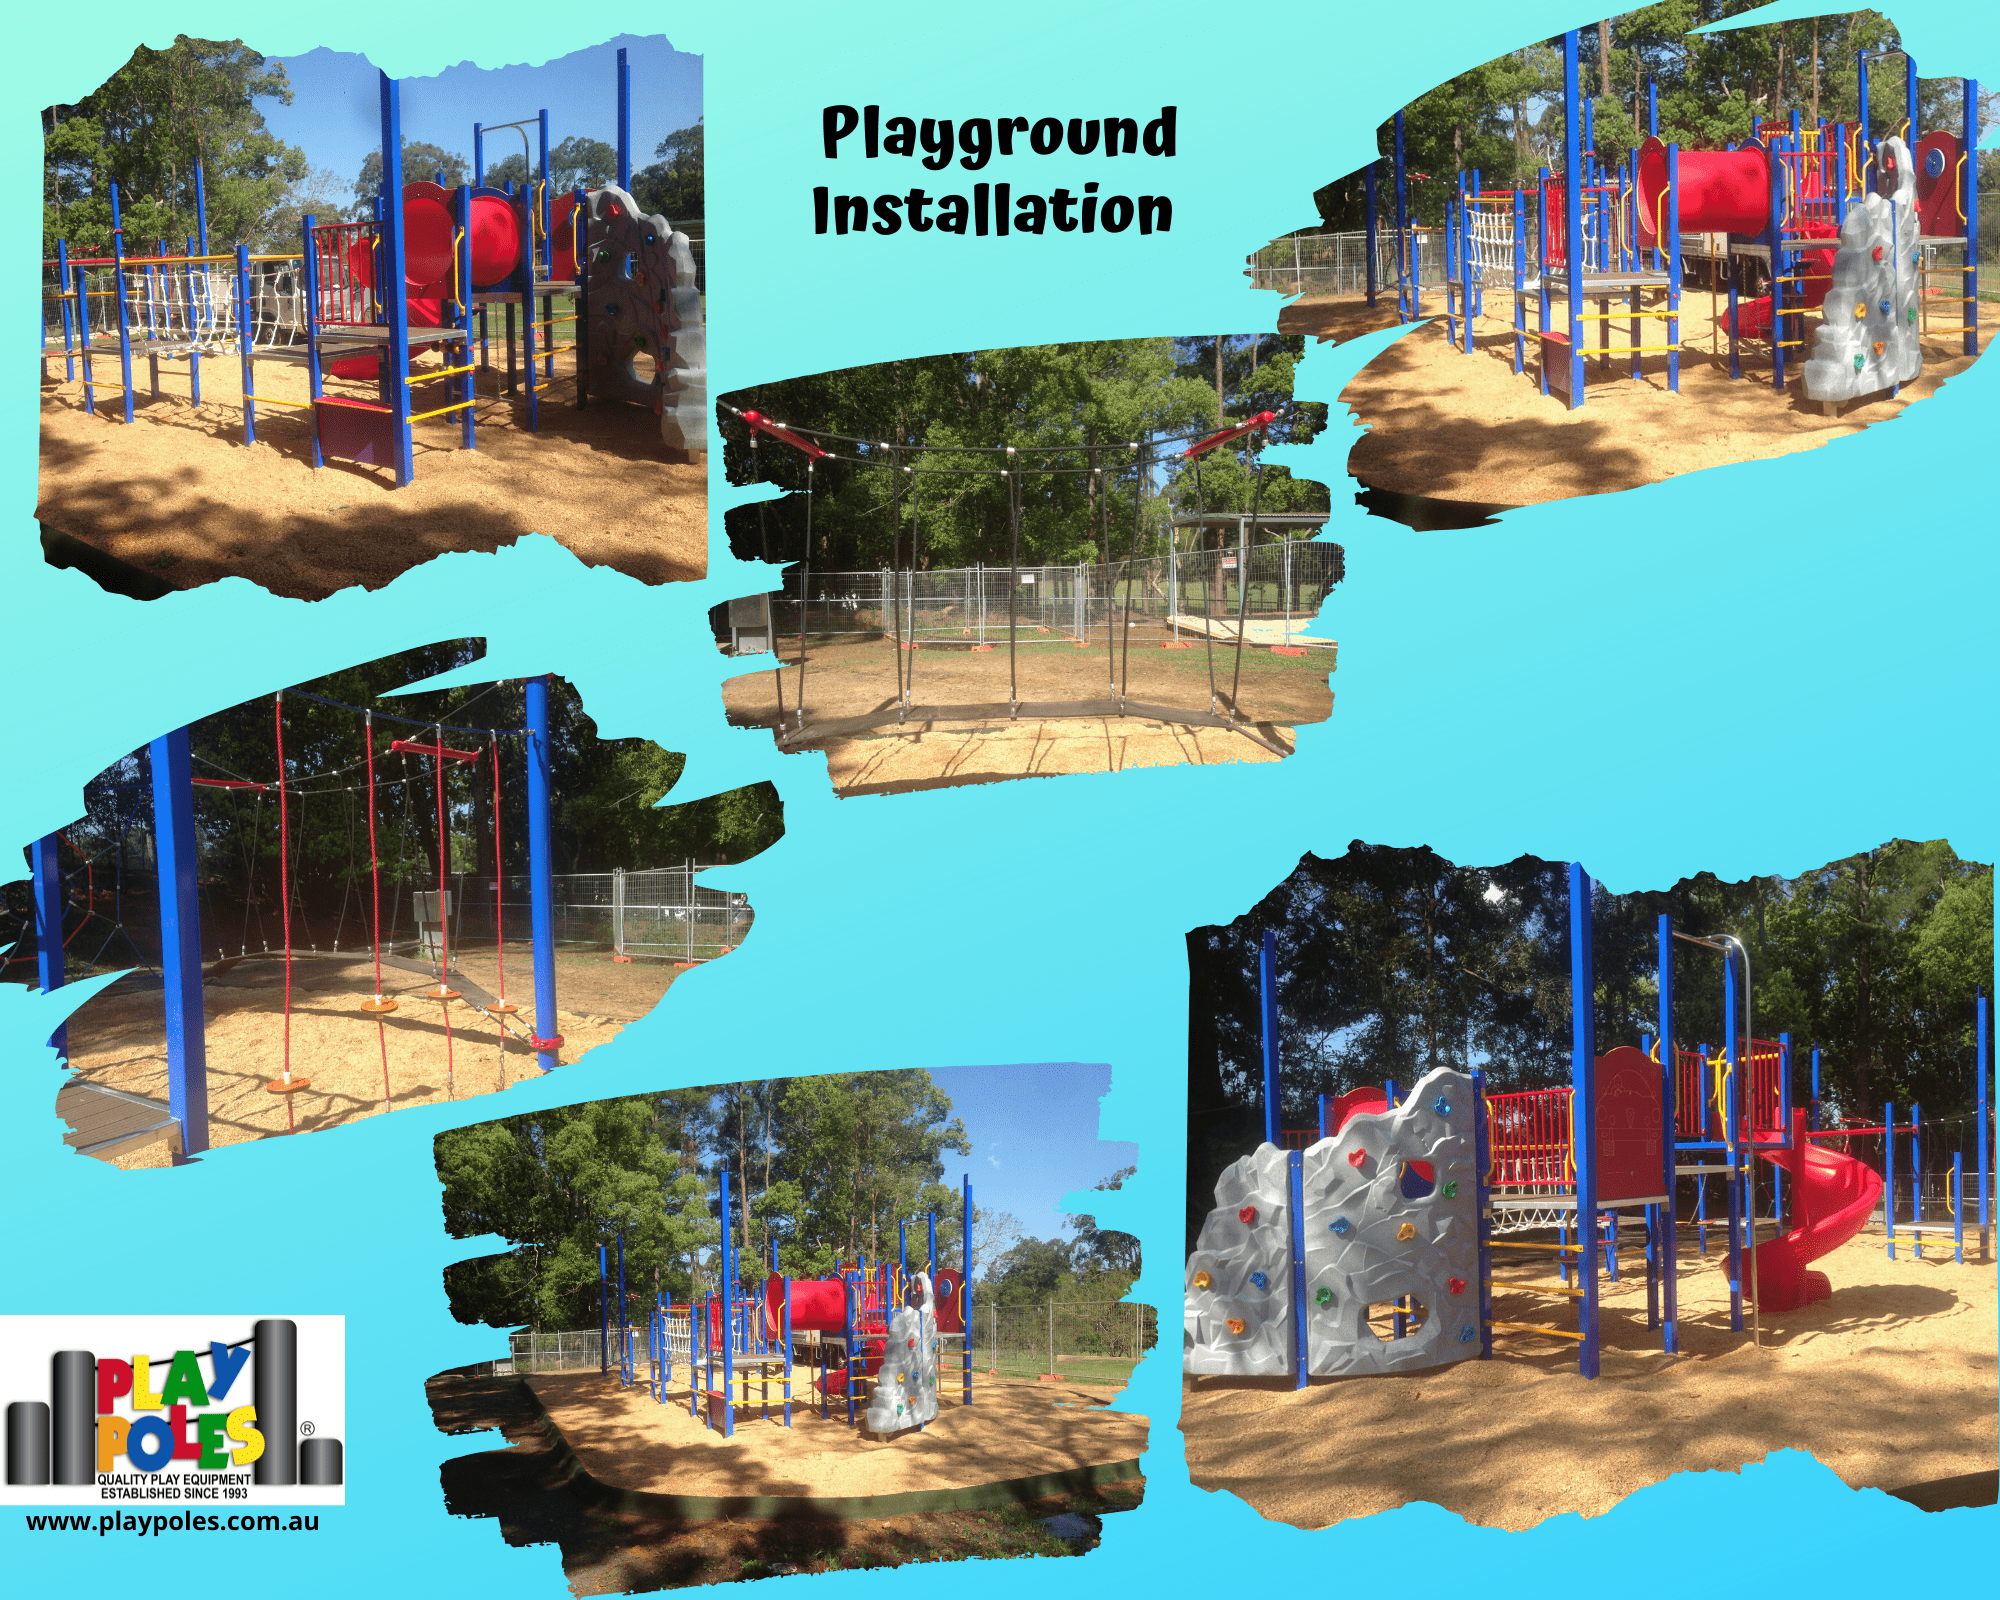 Playground Installation